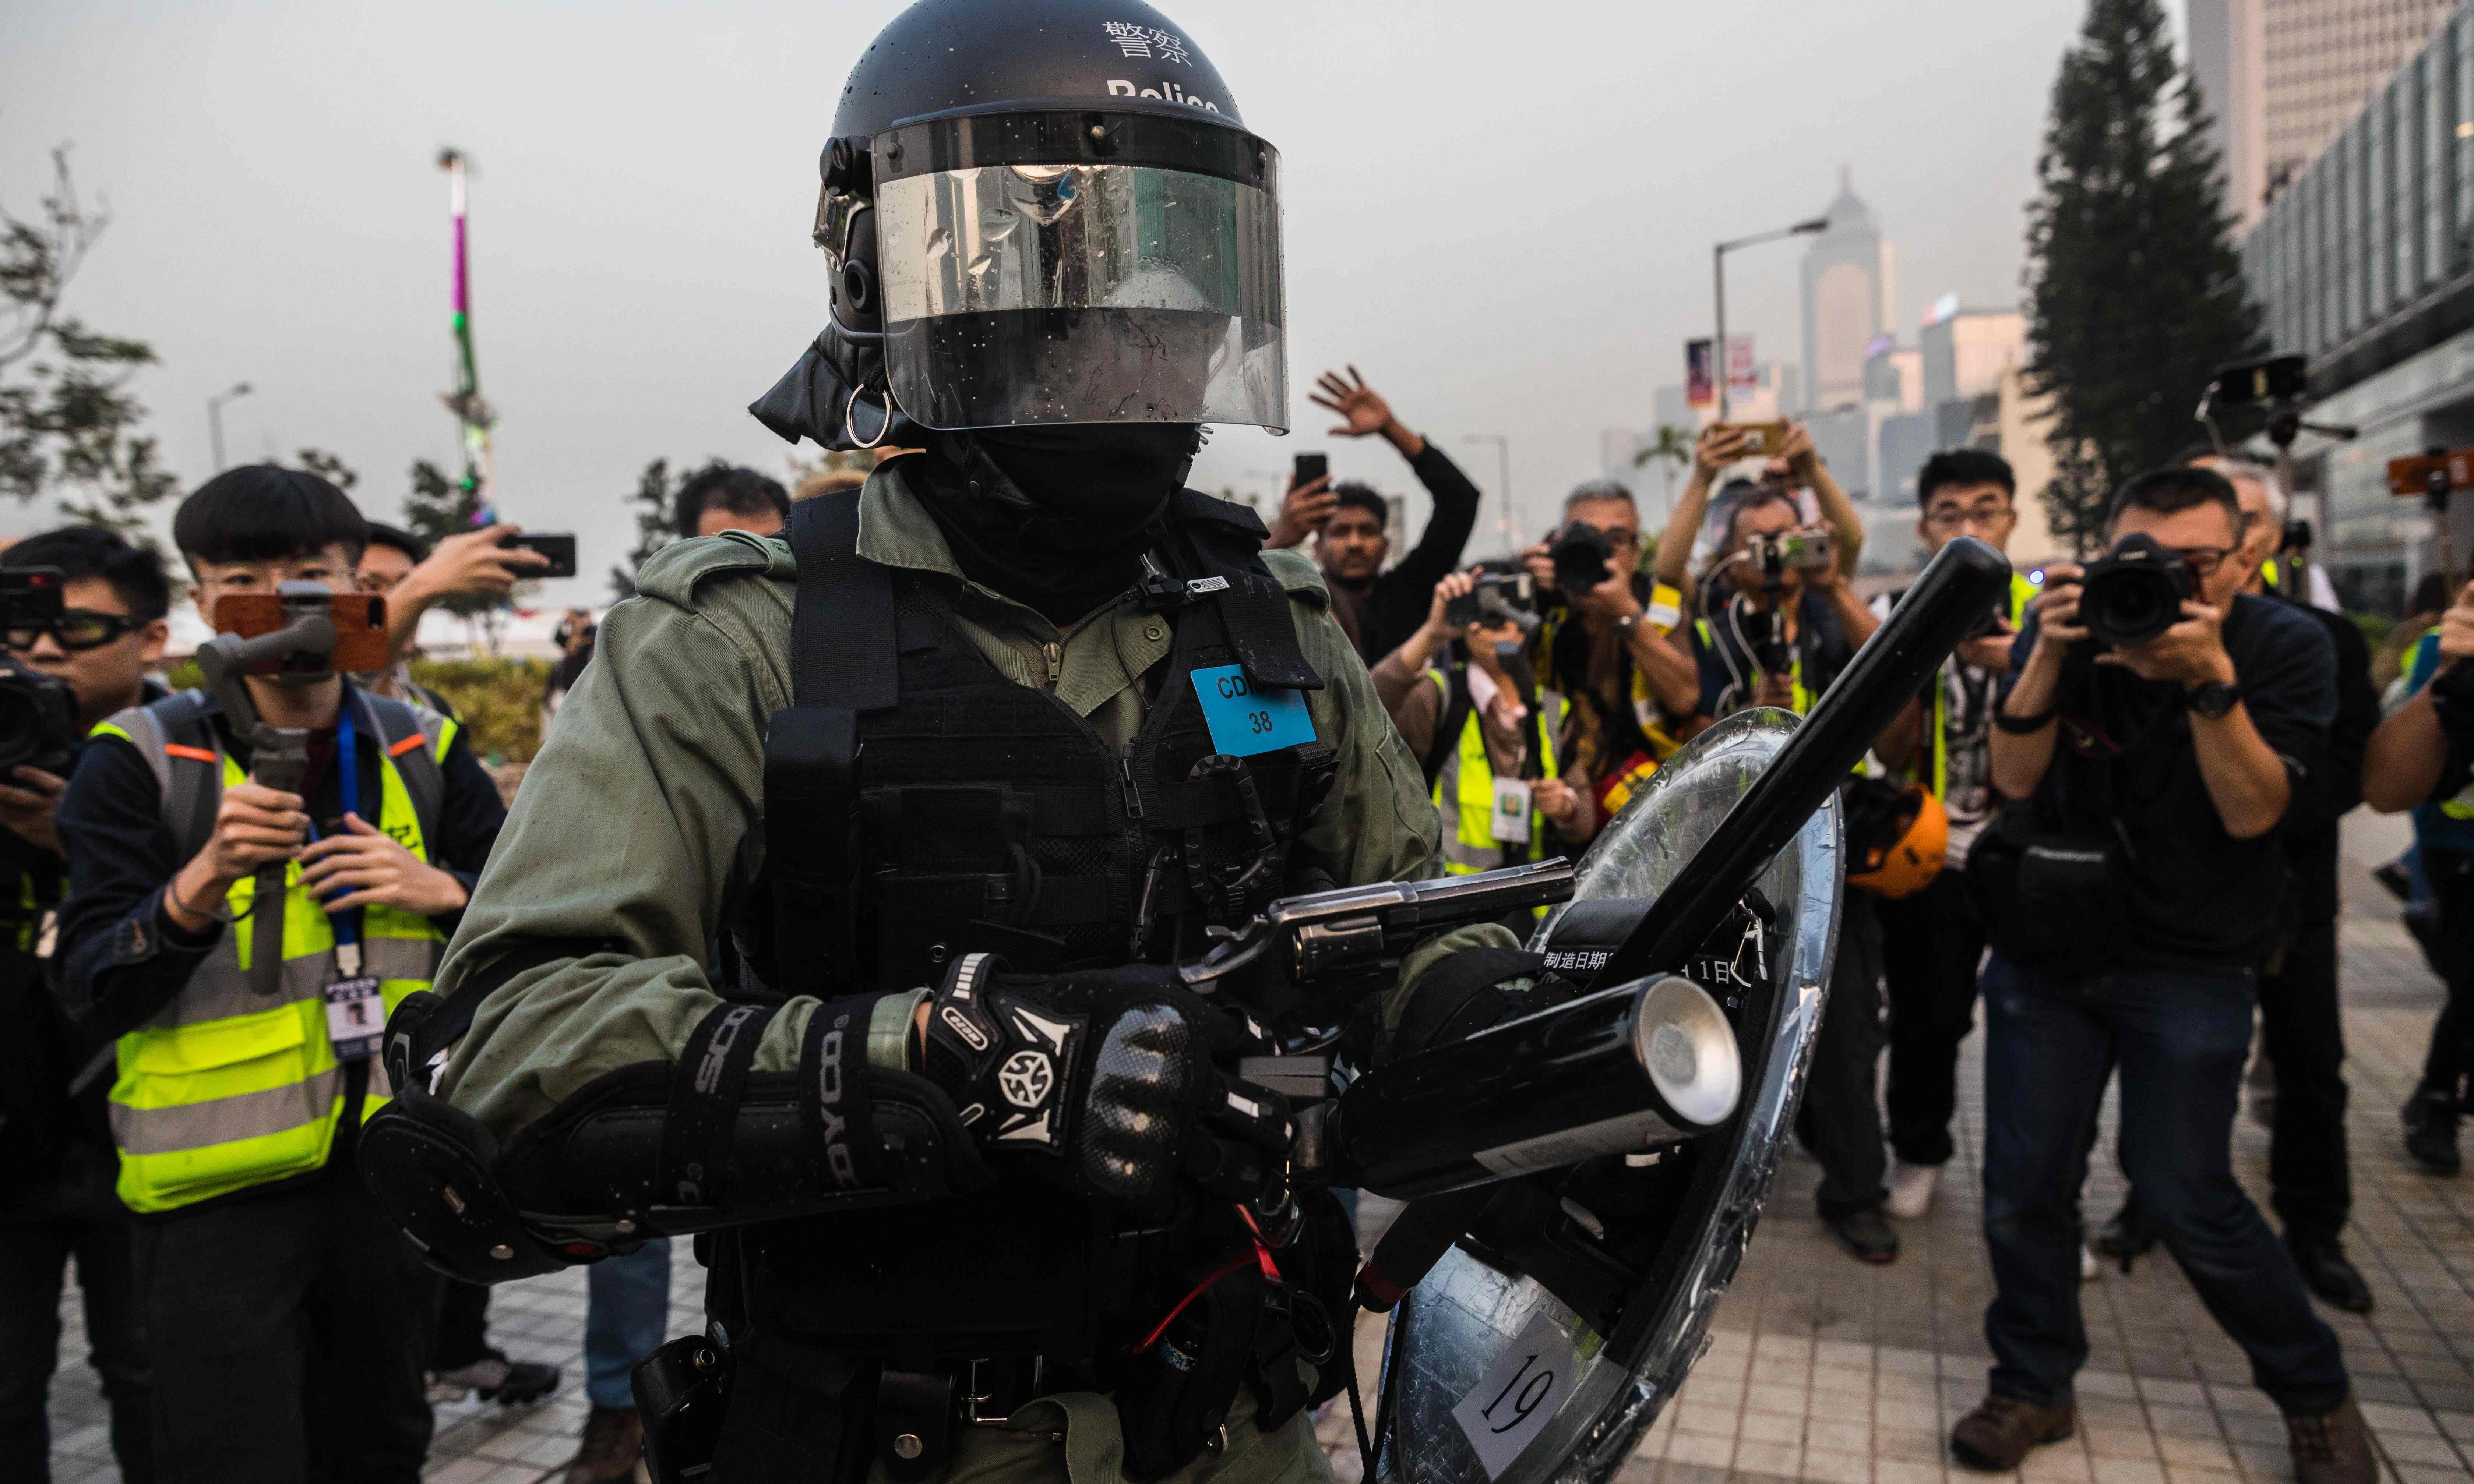 Hong Kong police clash with protesters after Uighur rally